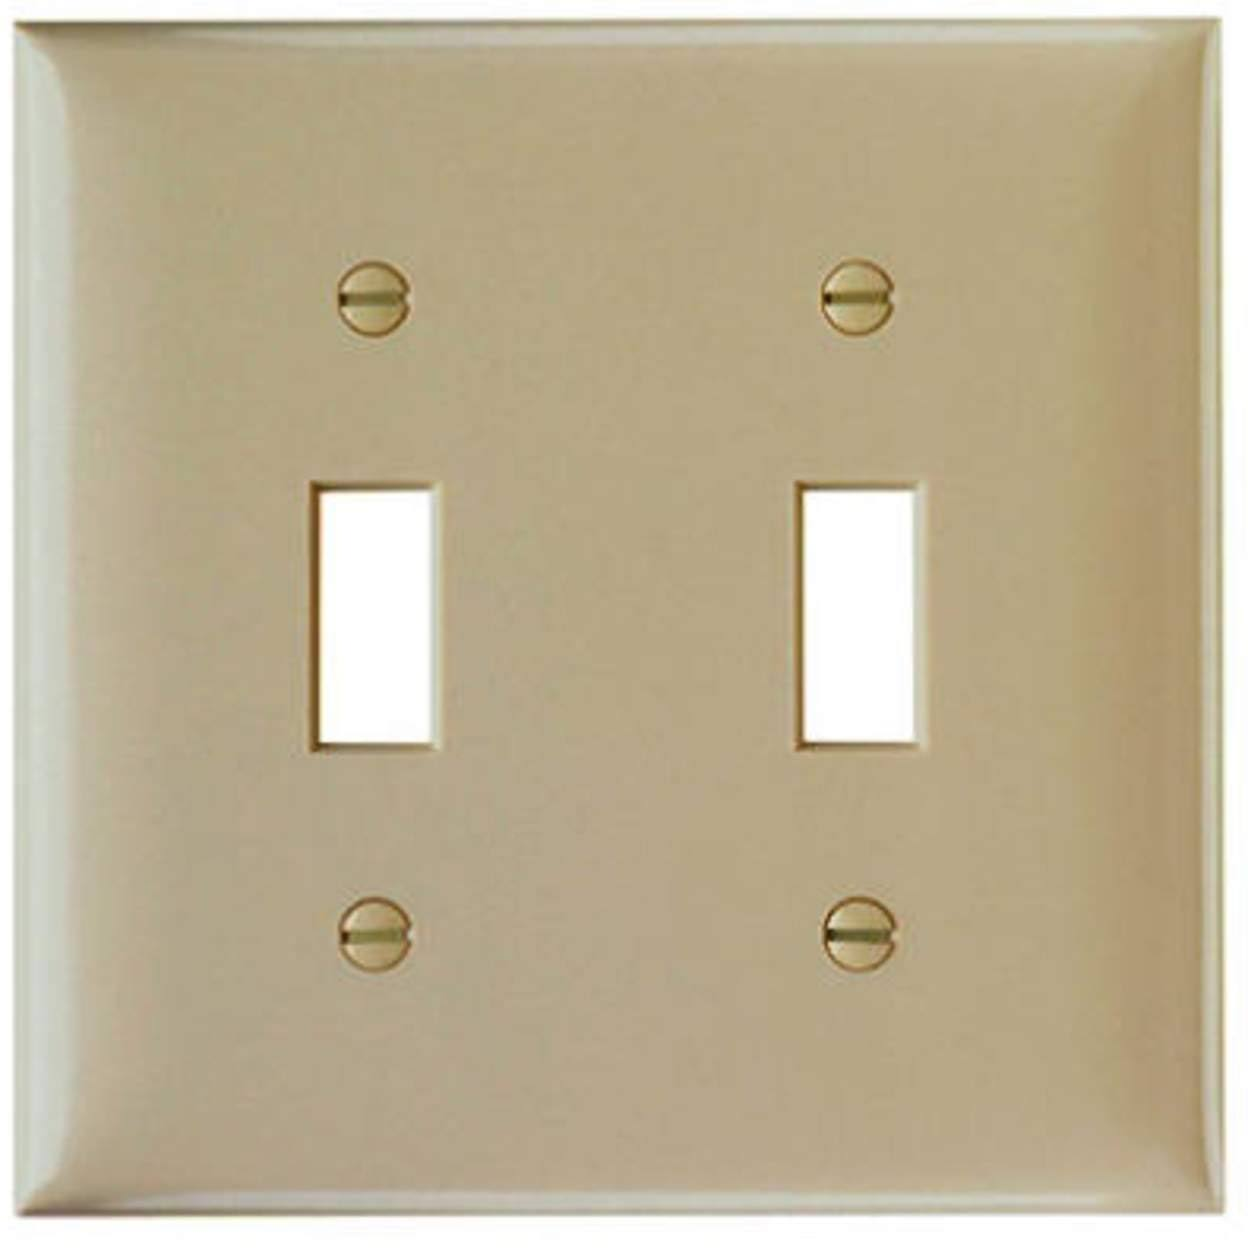 Pass & Seymour Toggle Urea Light Wall Plate - Light Almond, 2 Gang